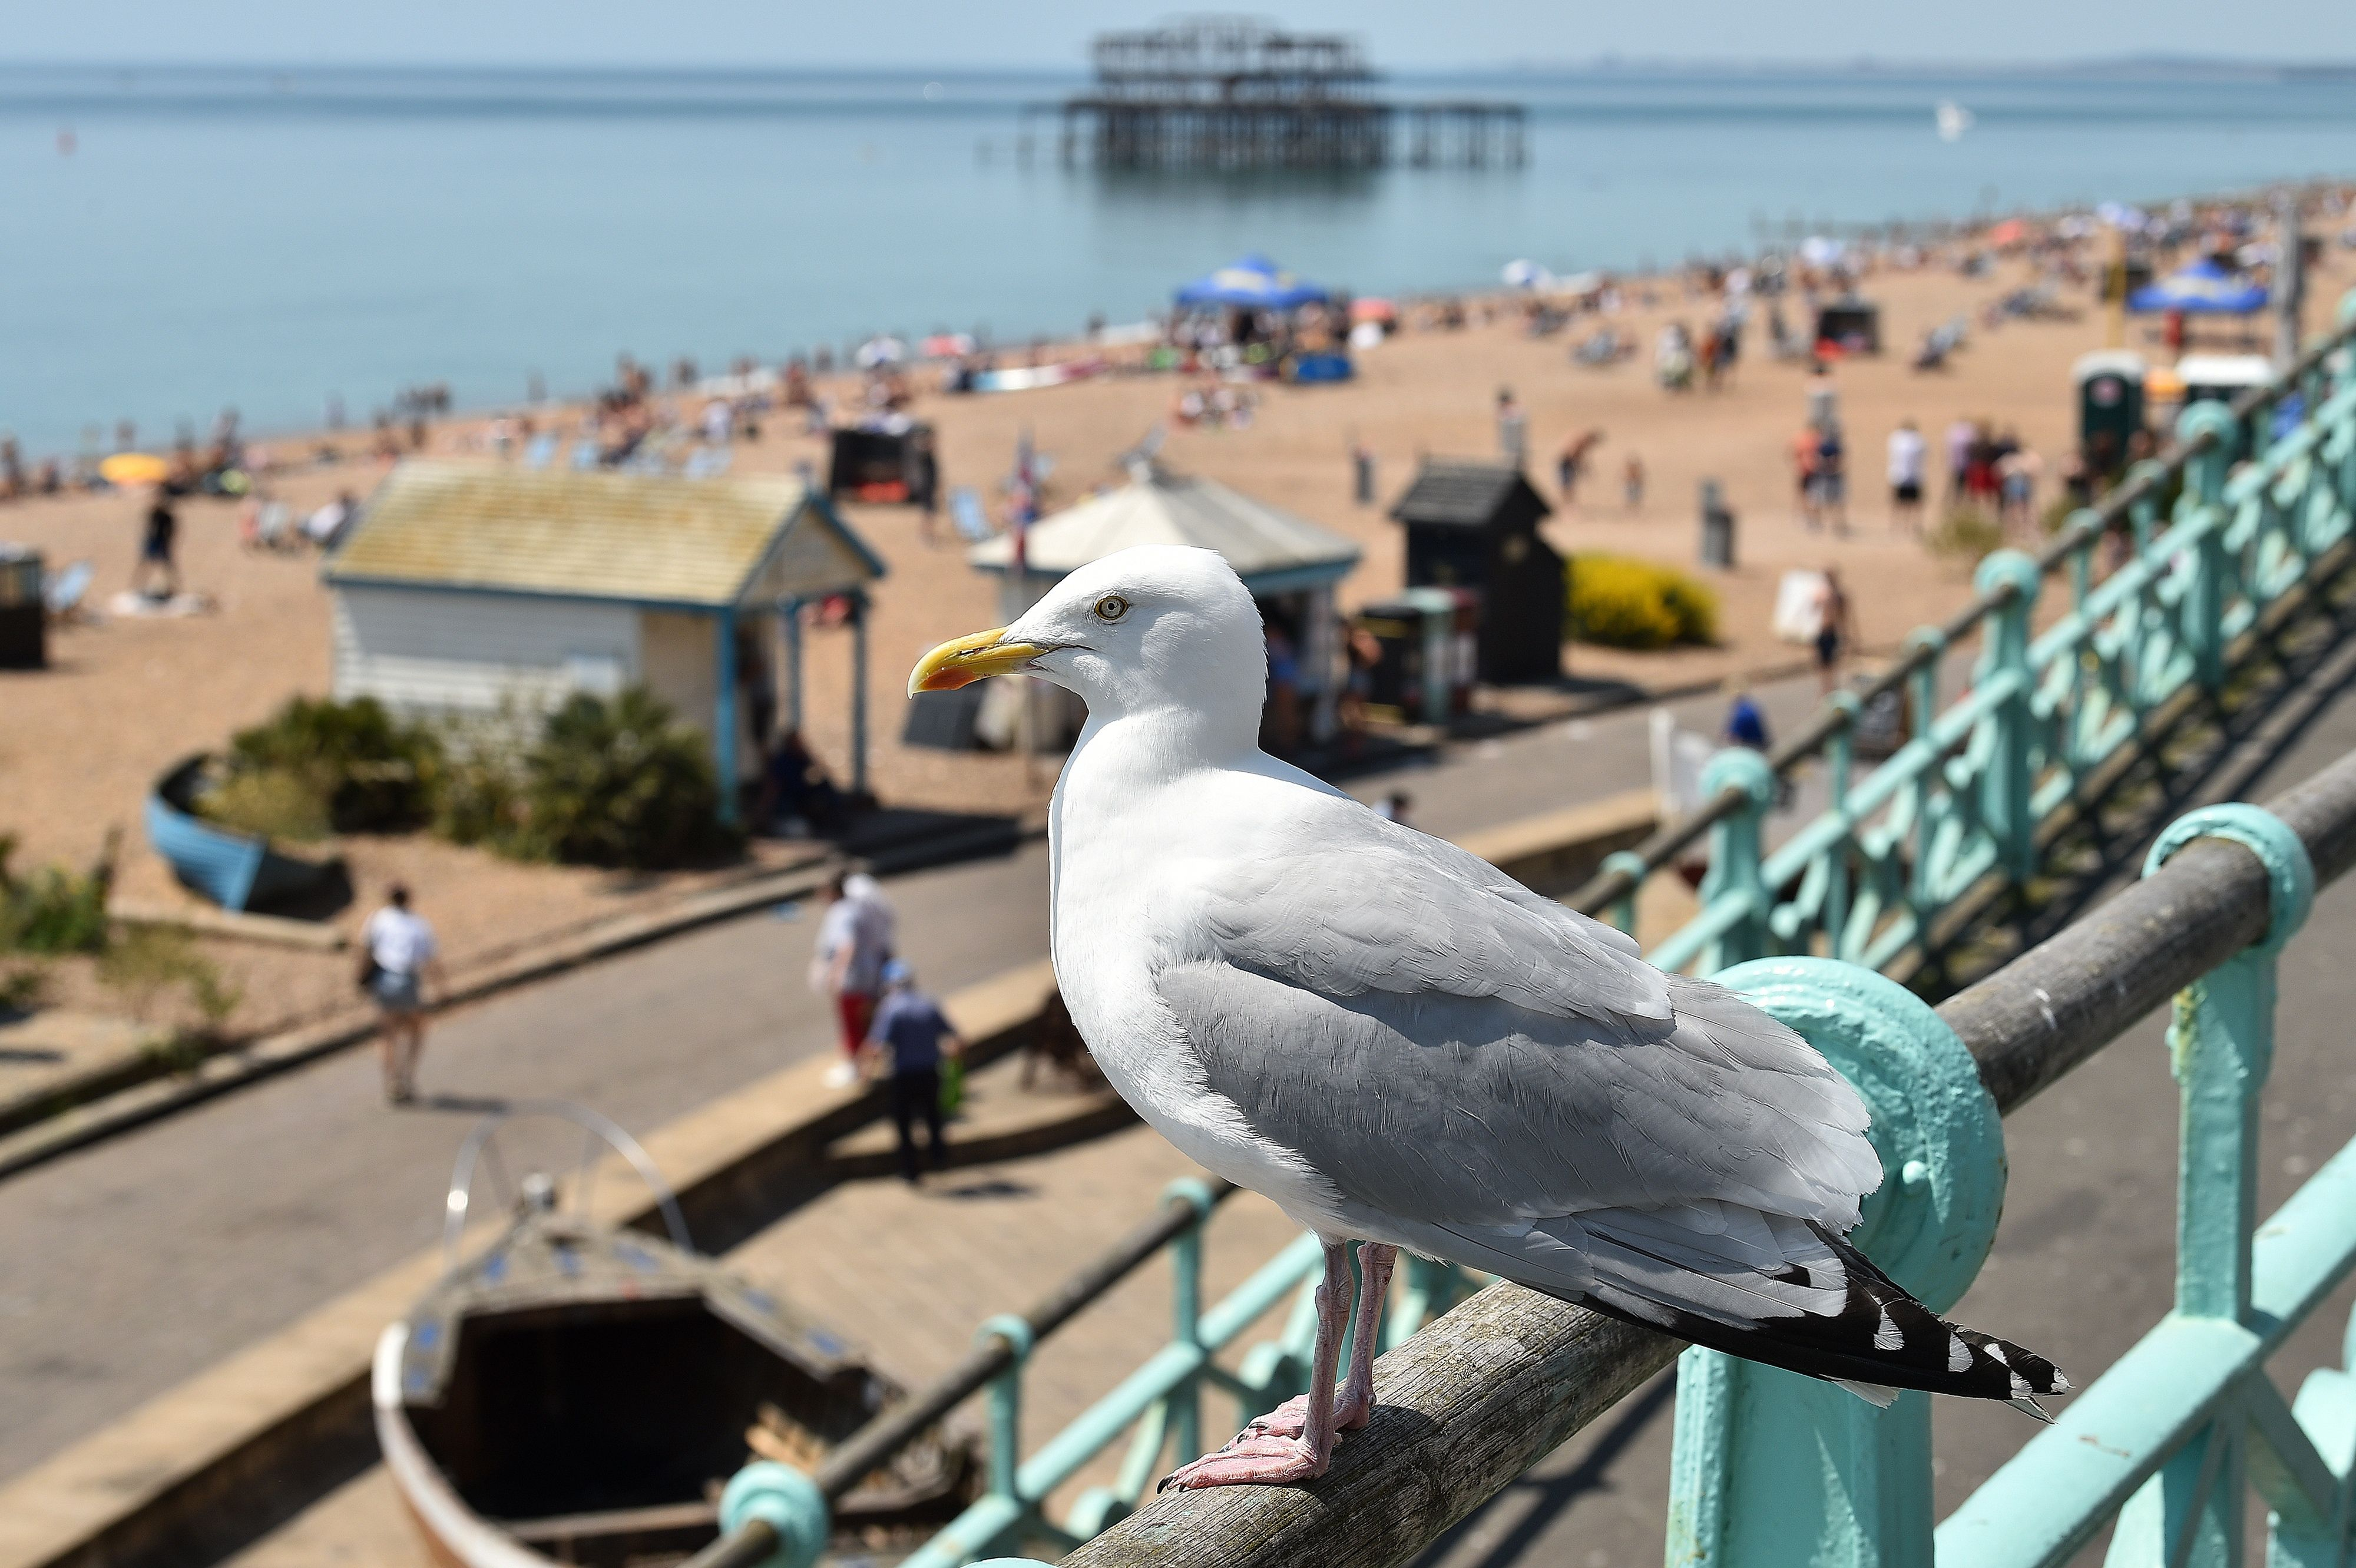 A man bit a seagull before throwing it to the ground, according to police and then accused the bird of attacking him. Source: Getty Images